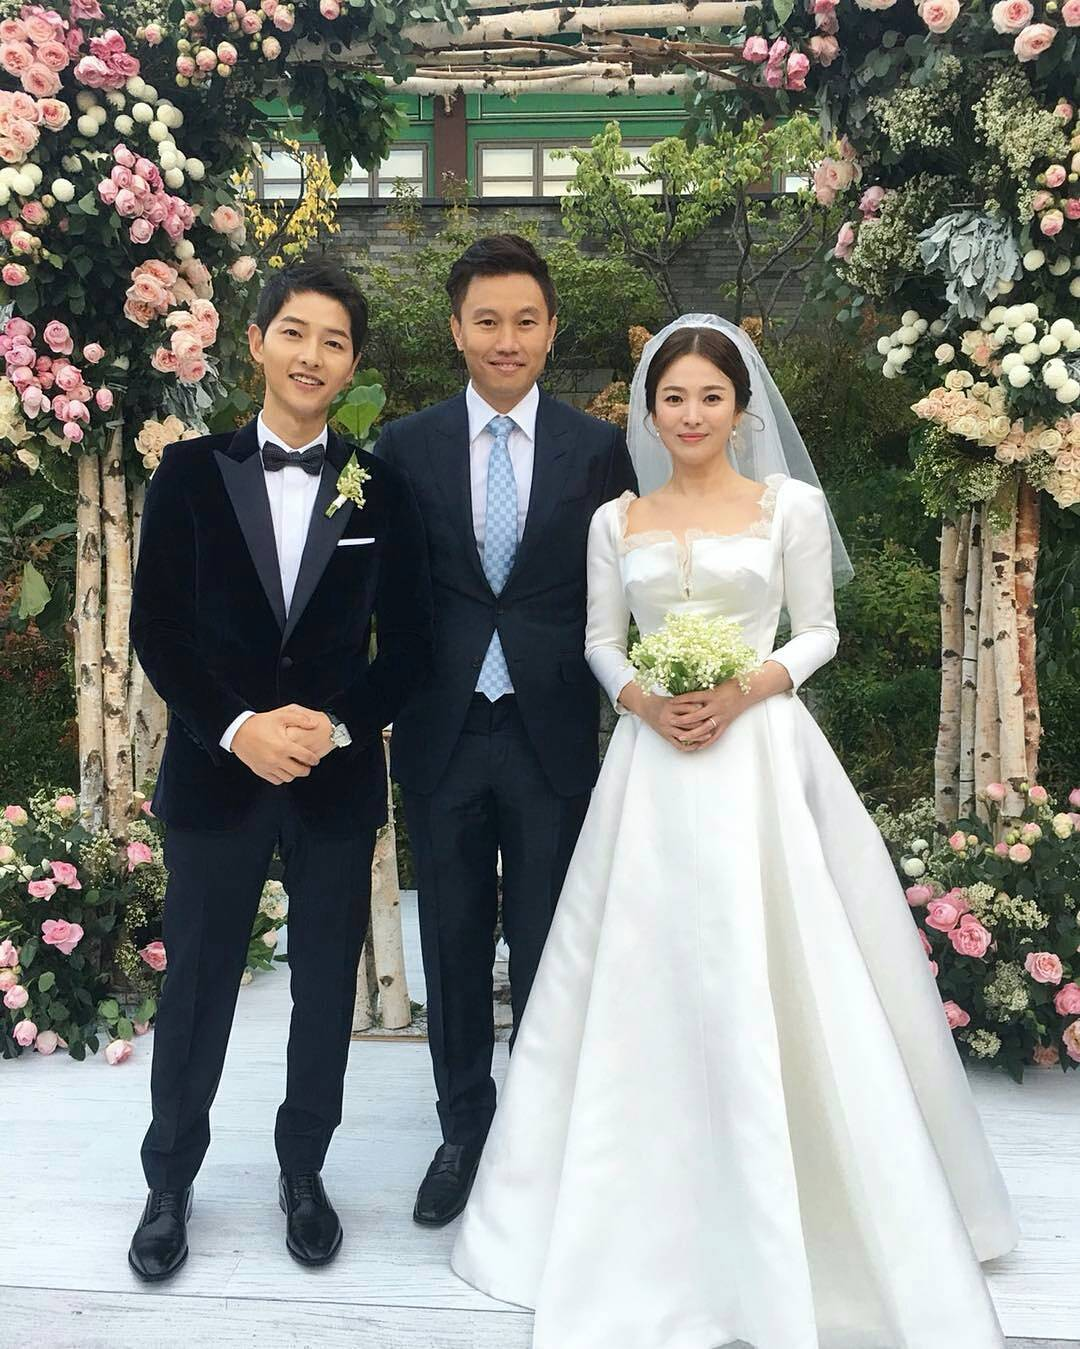 TRENDING Song Hye Kyo Started Crying After Joong Ki Said This To Her At Their Wedding